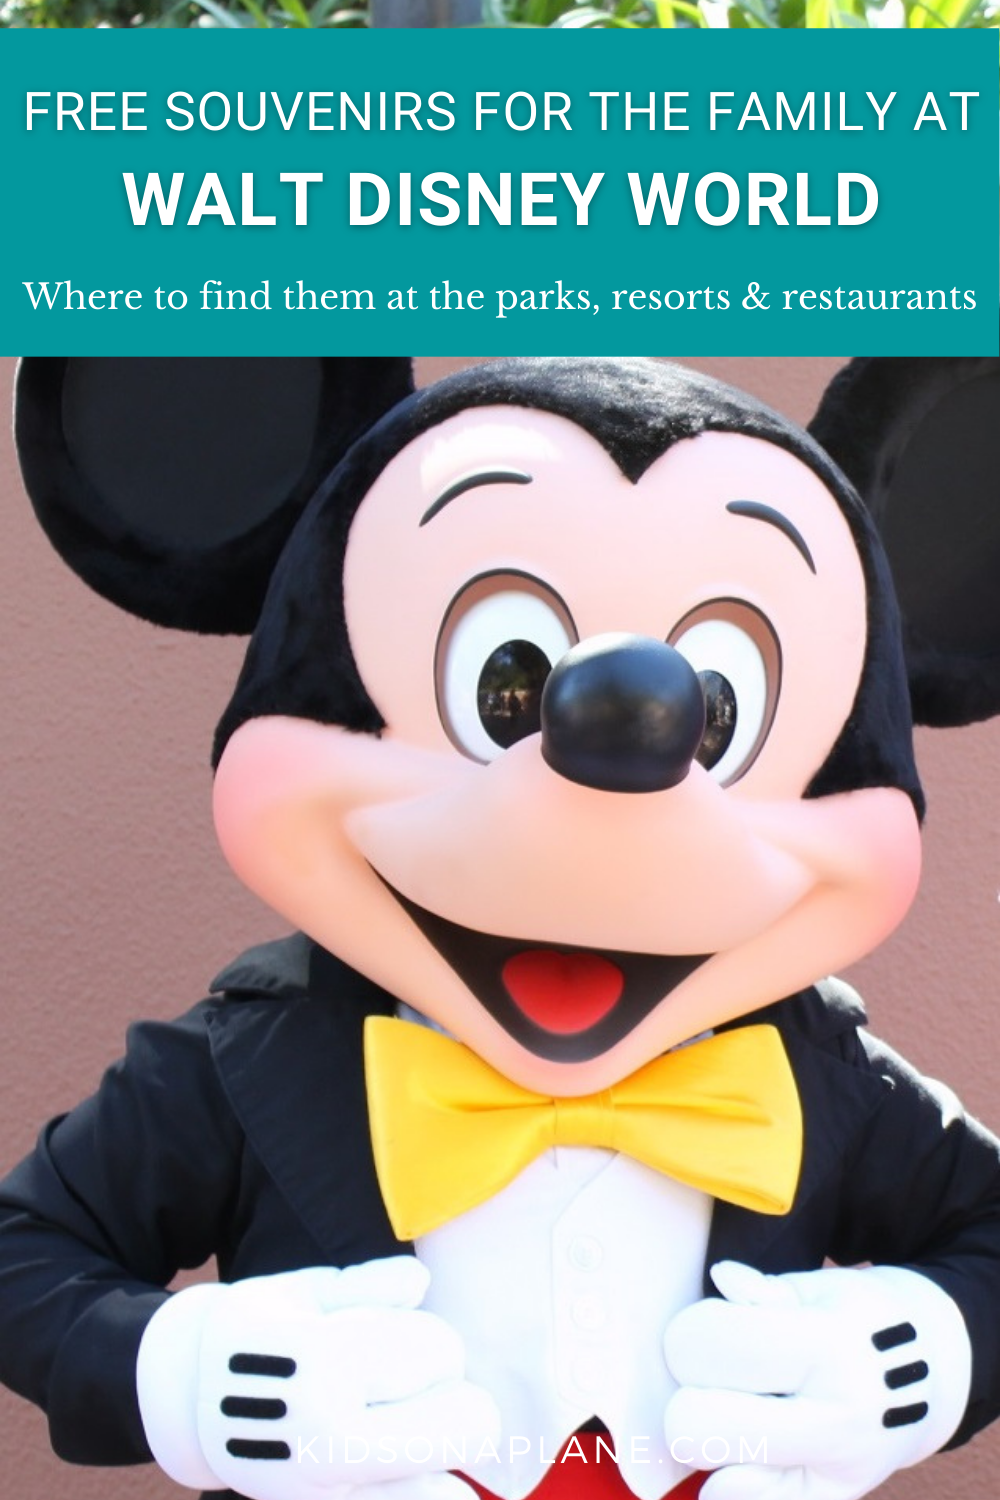 Where to find FREE souvenirs at Disney World - Parks Restaurants and Resorts